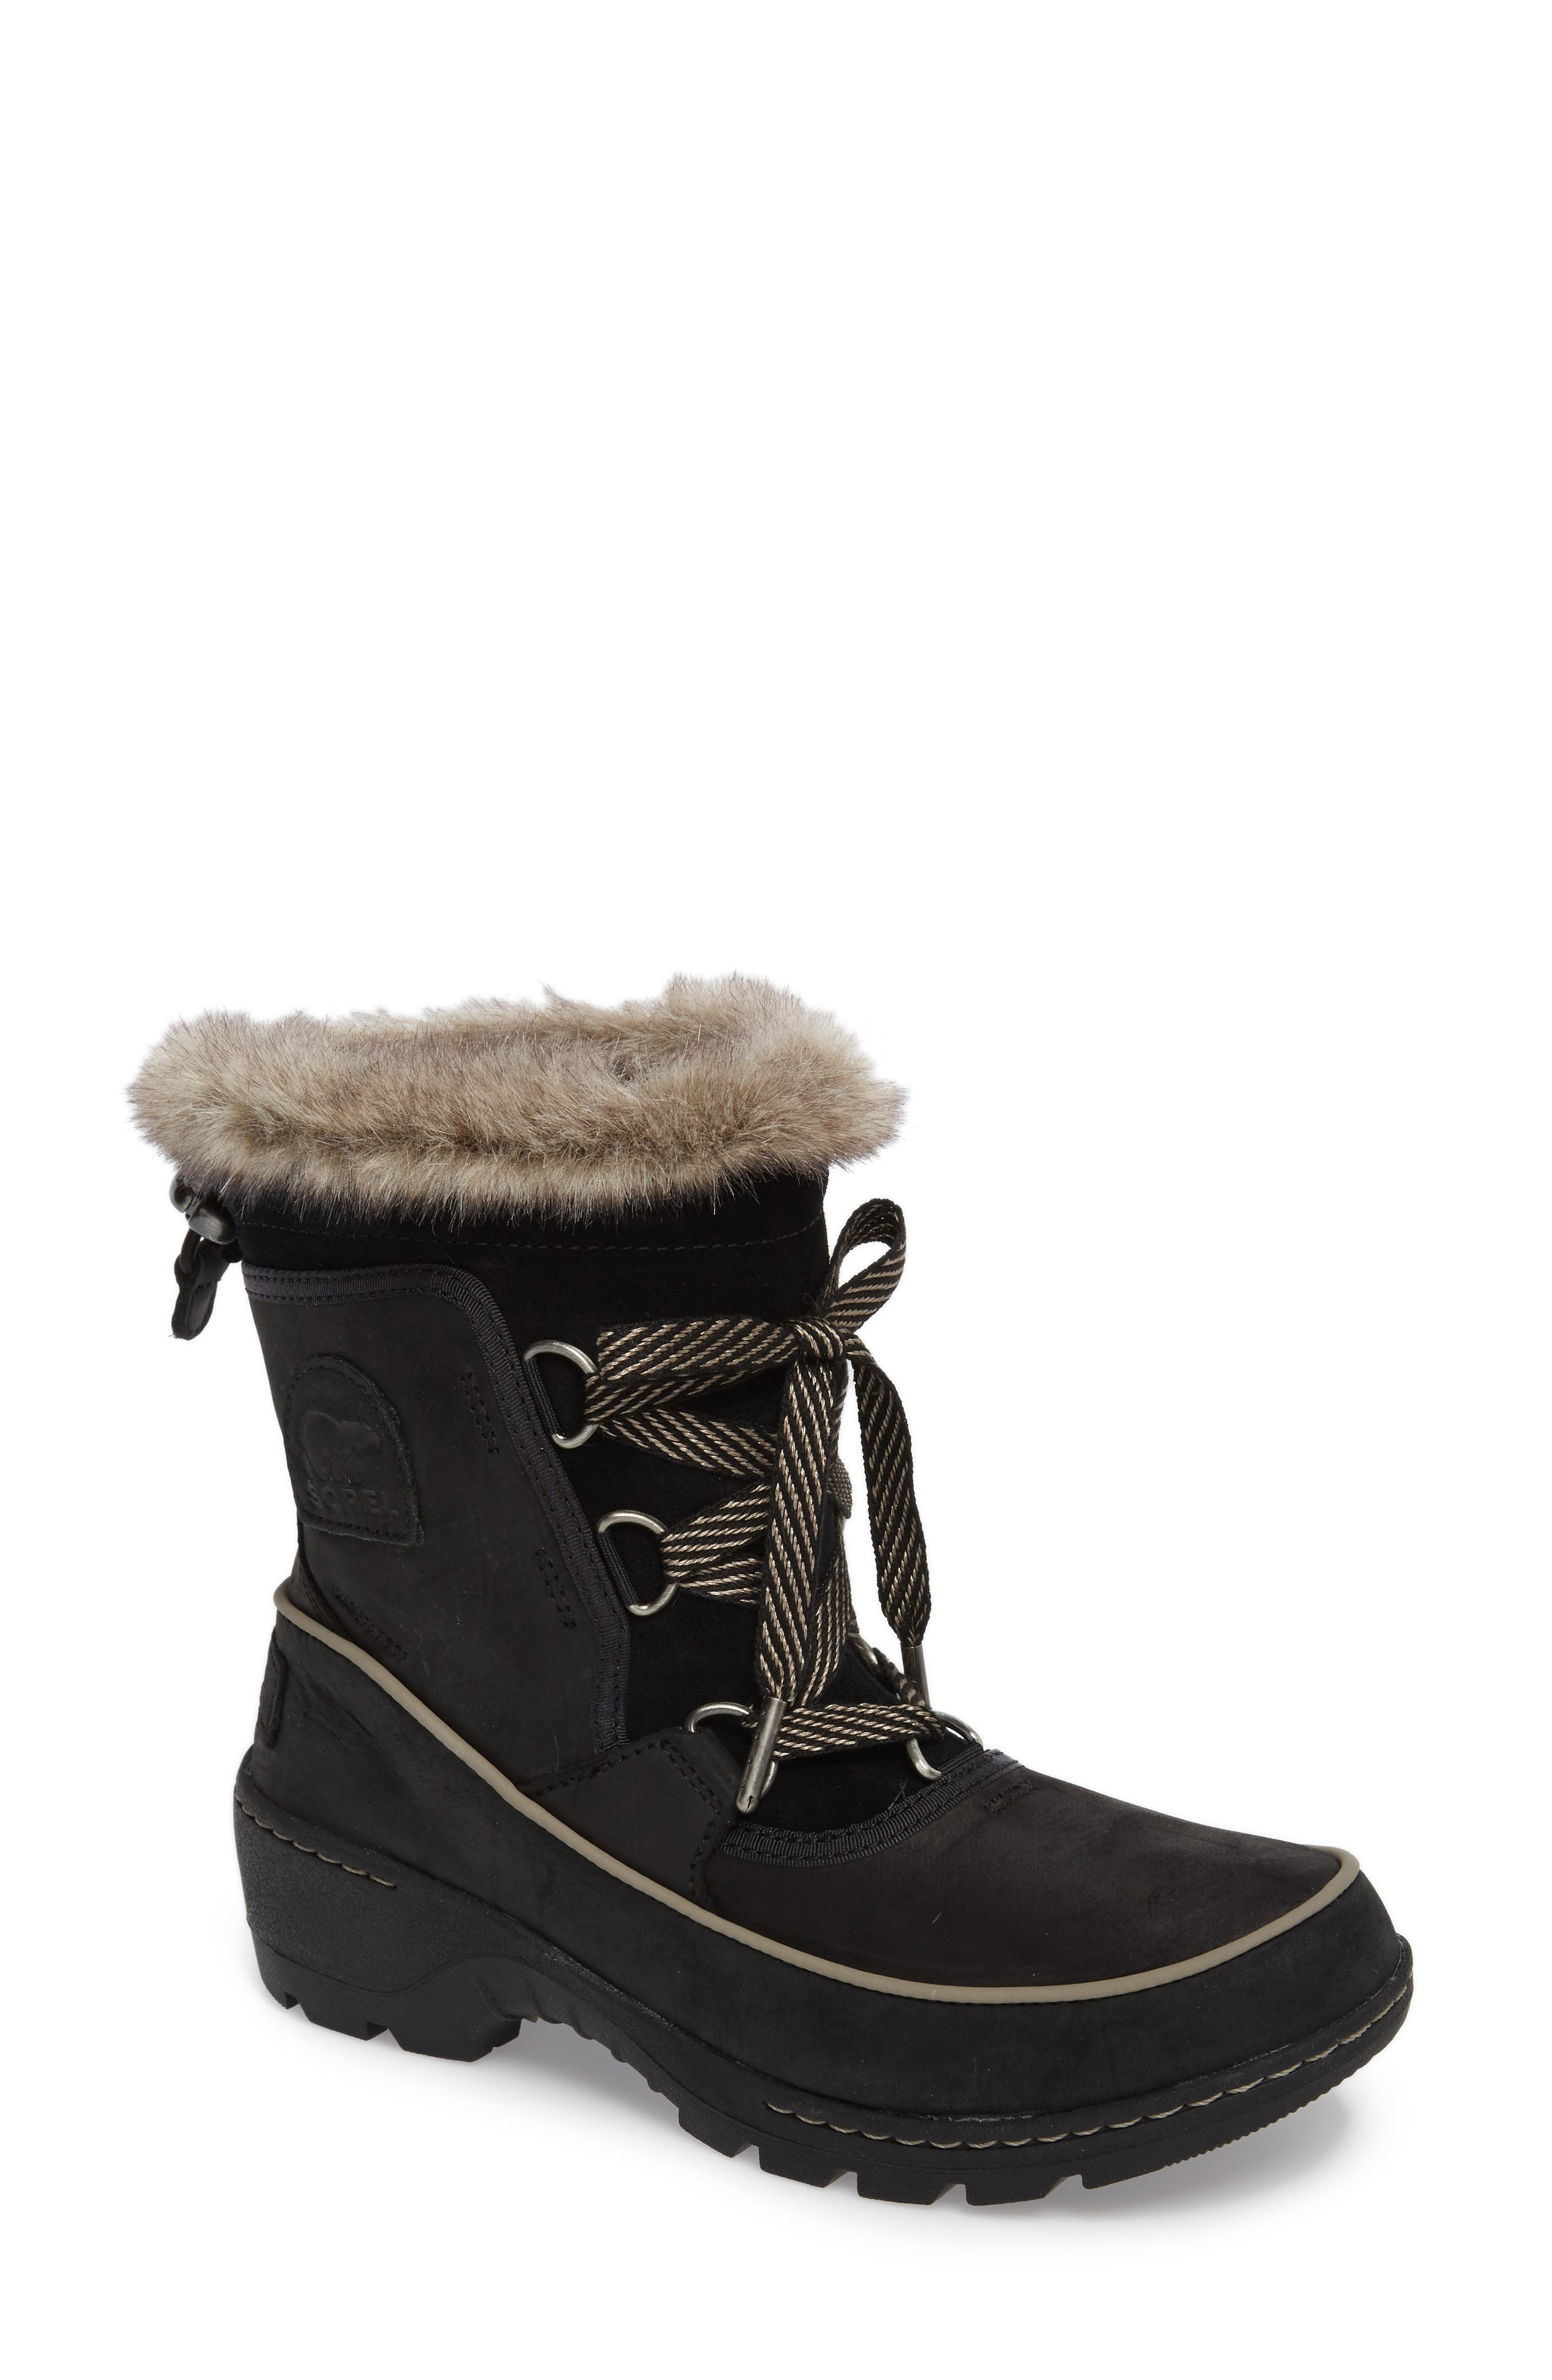 Tivoli II Insulated Winter Boot with Faux Fur Trim,                             Main thumbnail 1, color,